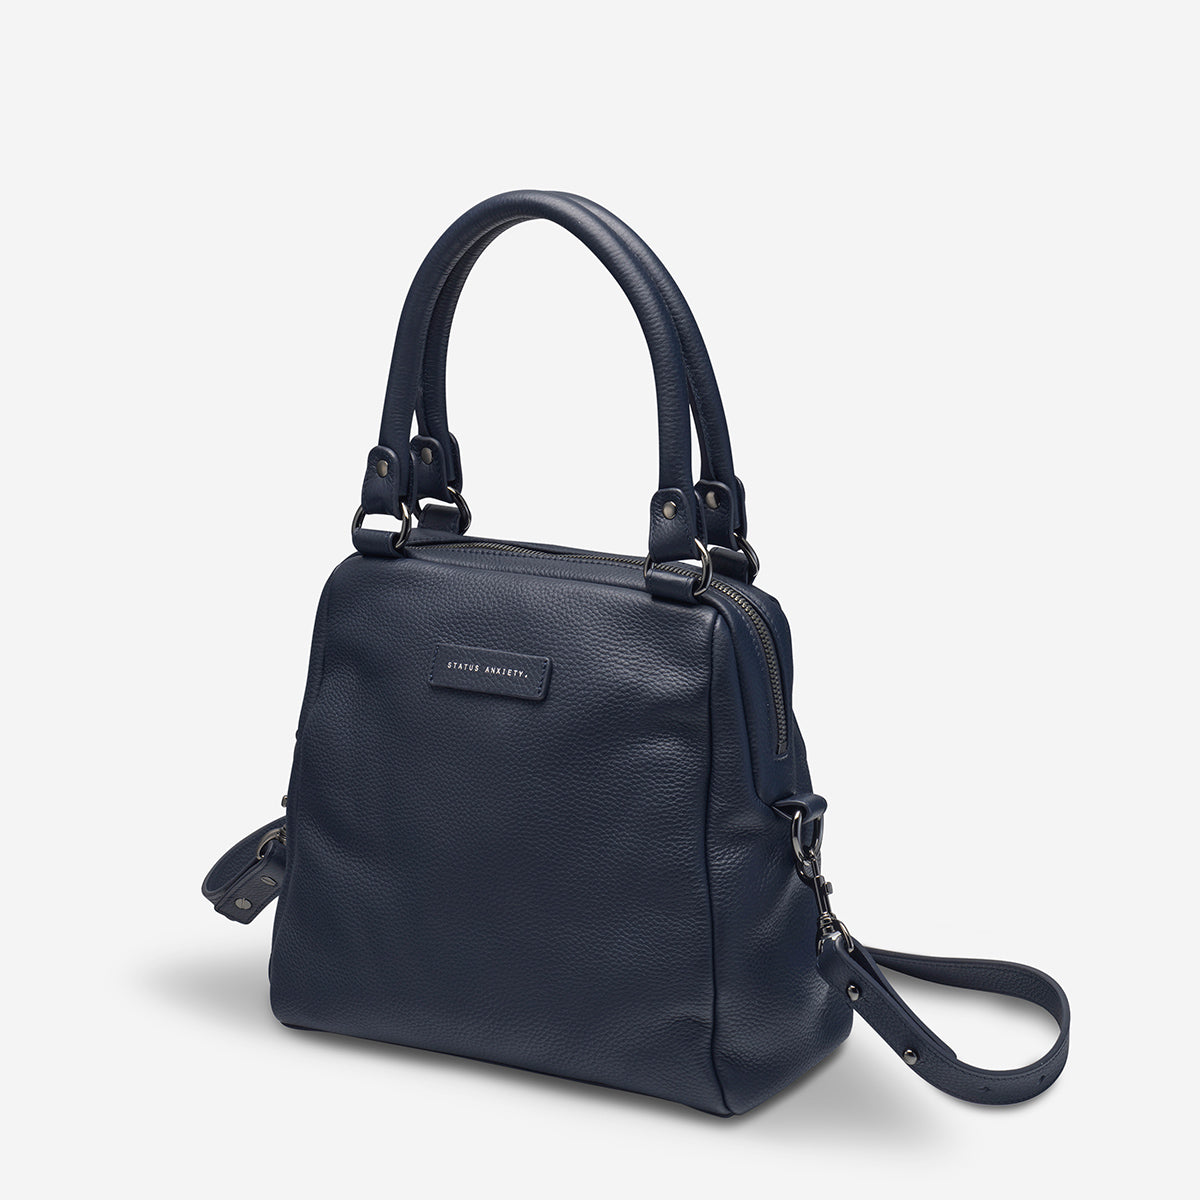 Status Anxiety Last Mountains Women's Leather Handbag - Navy Blue